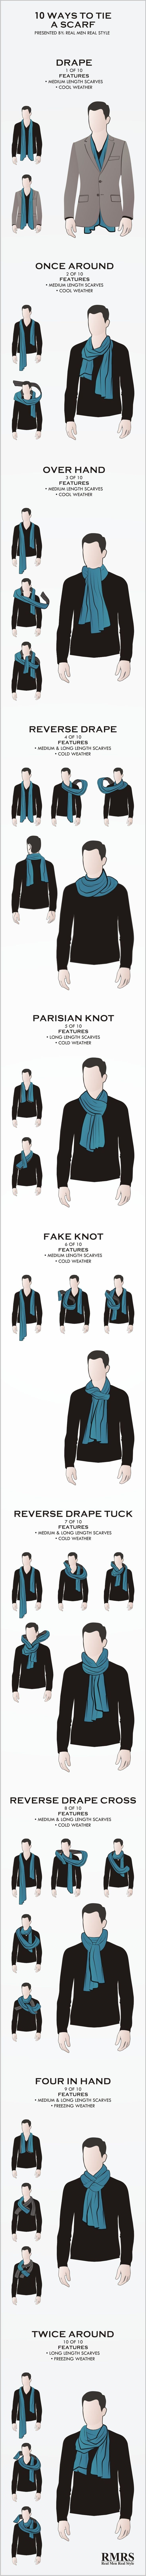 10 Dapper Ways To Tie A Scarf Like A Man. How to wear scarves for men. Best manly ways to wear scarves for men.